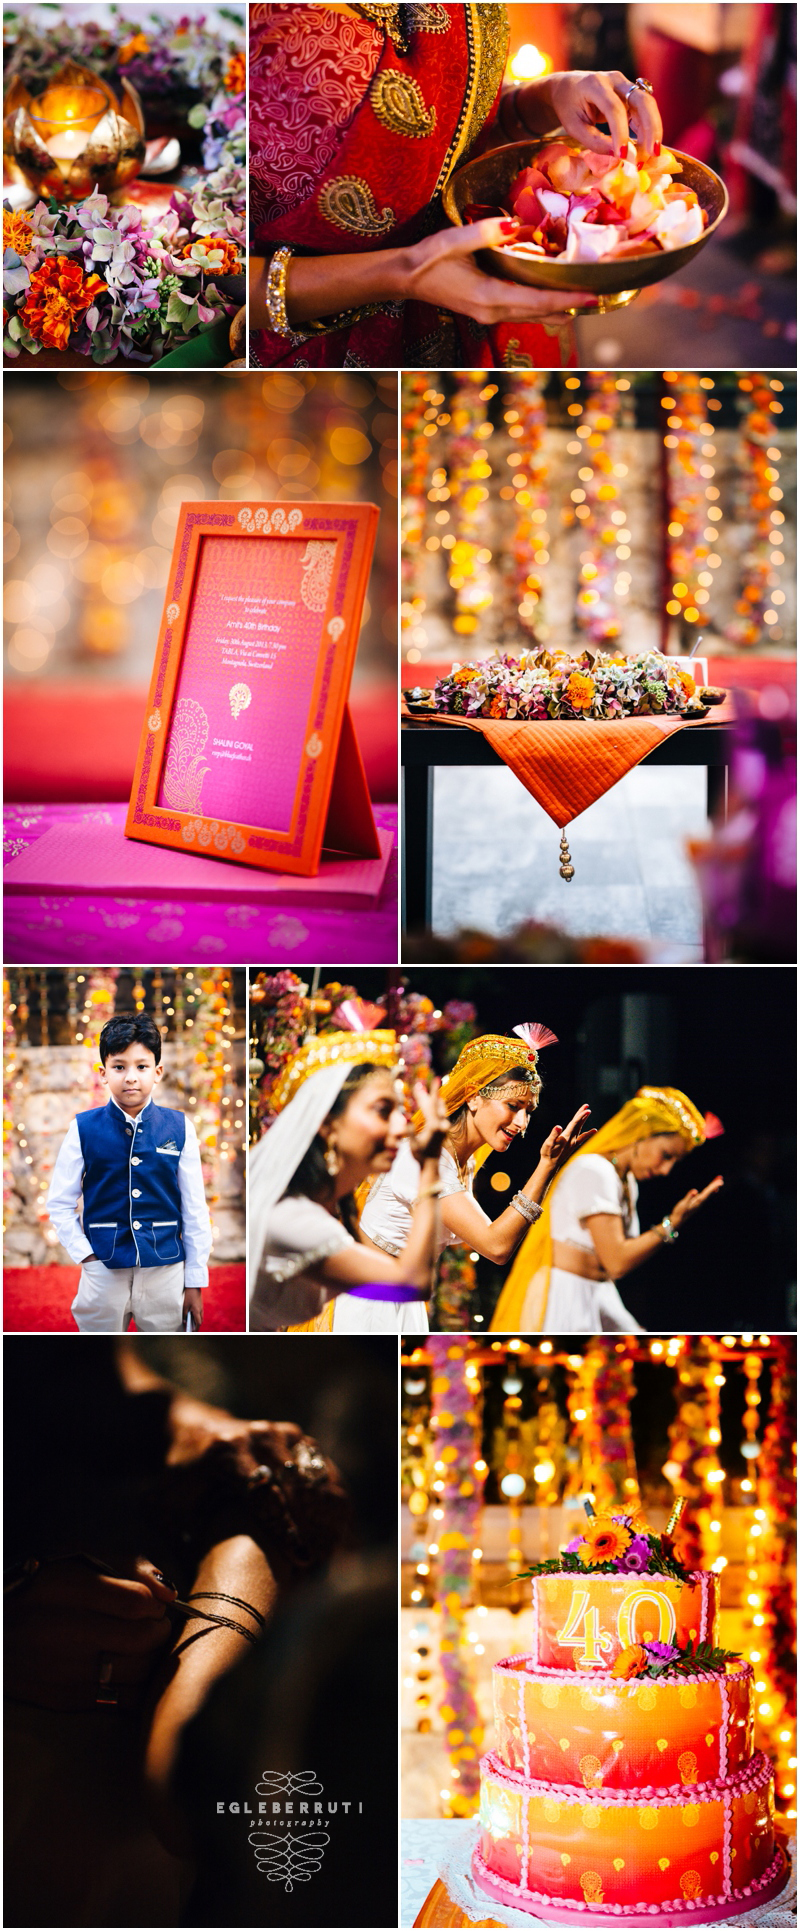 Event photography Lugano. Indian birthday party celebration in Tabla